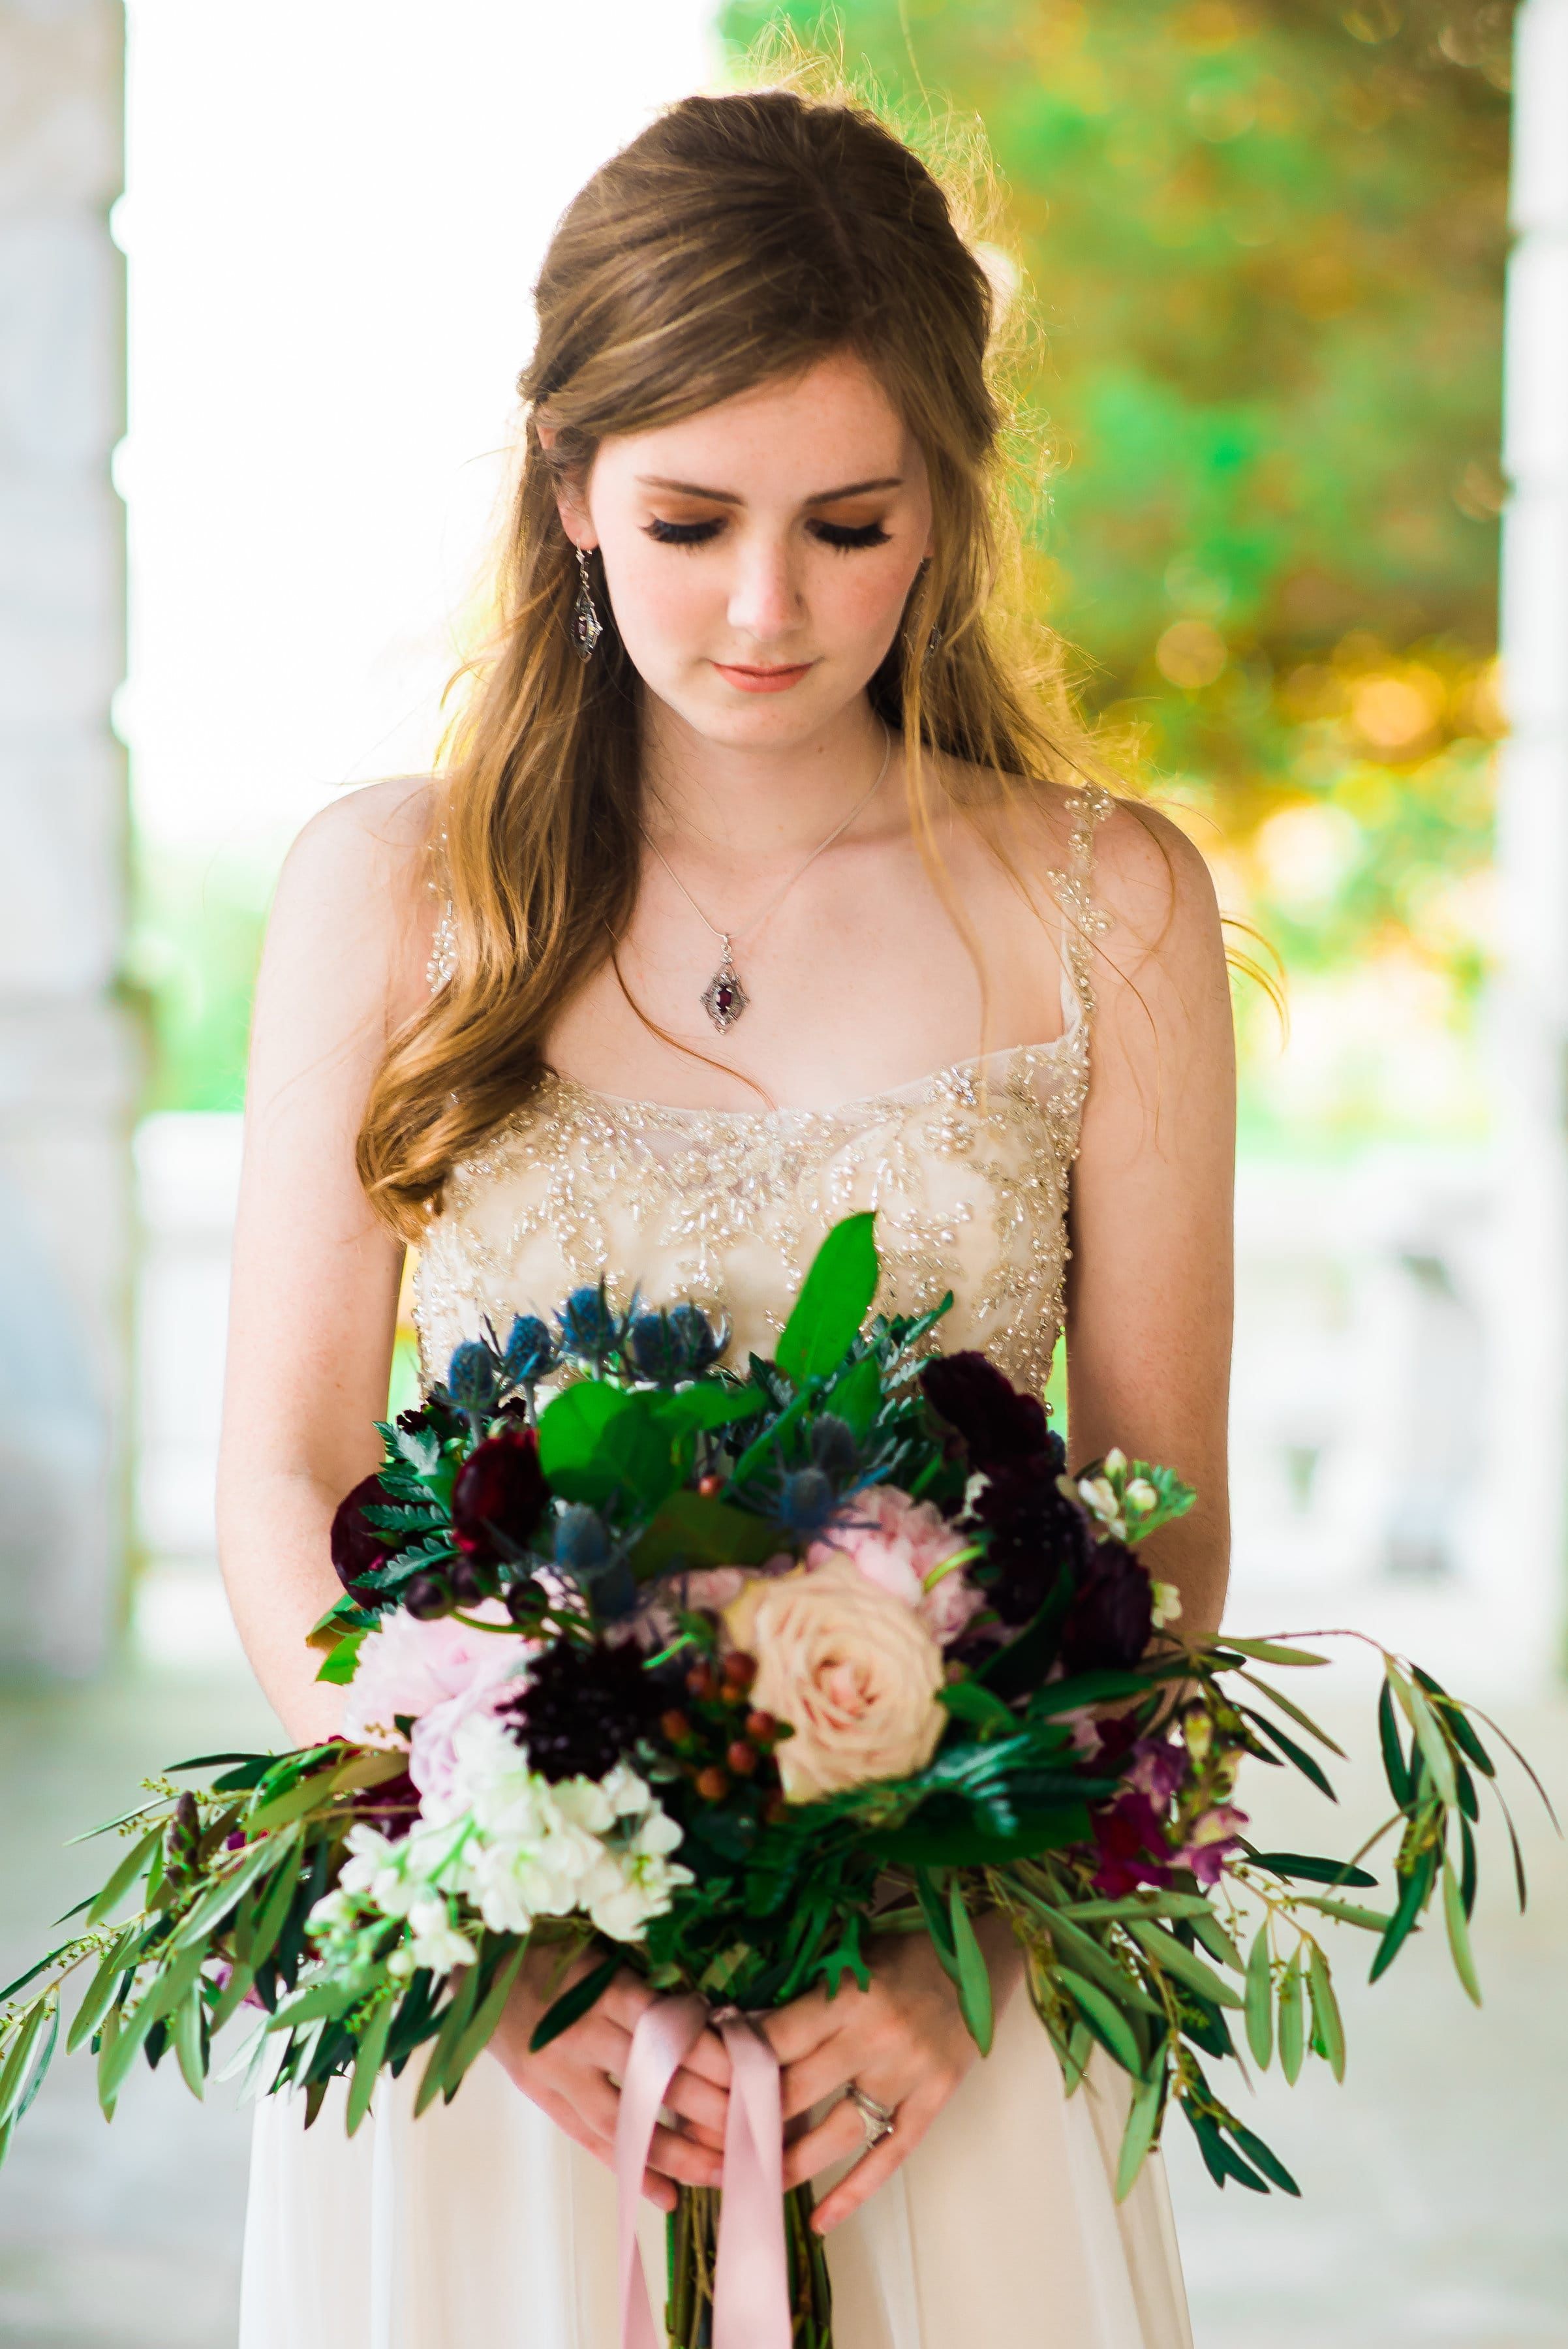 Romantic Styled Shoot with Jewel Tones and Soft Vintage-Inspired Wedding Dress